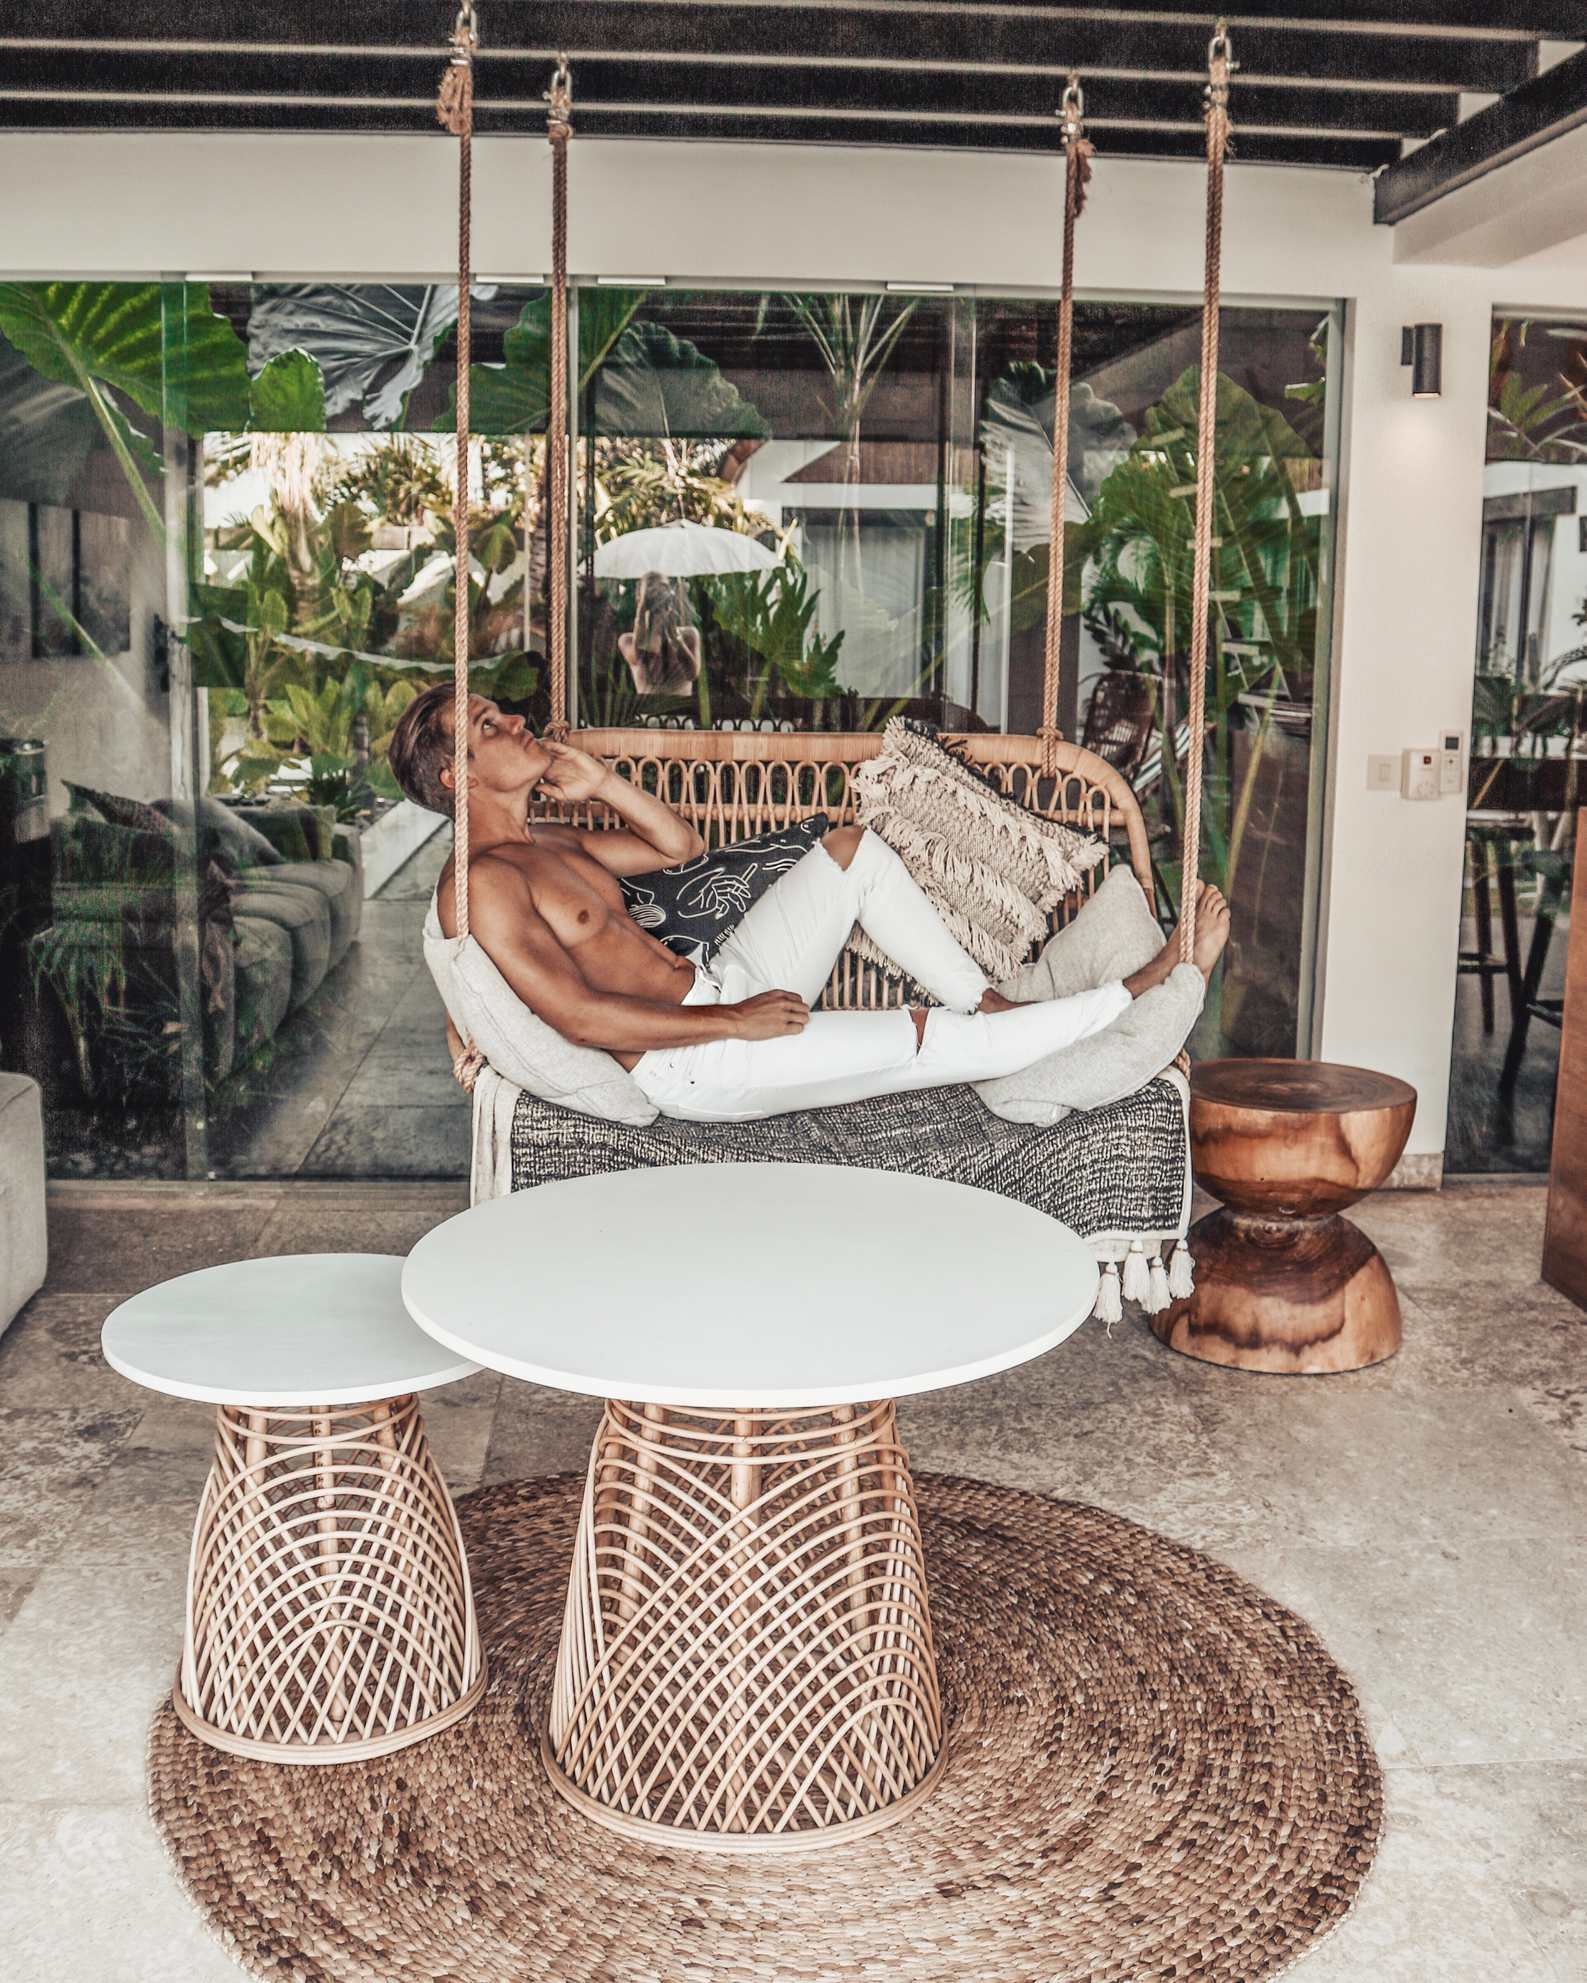 canggu-bali-places-to-stay.jpg